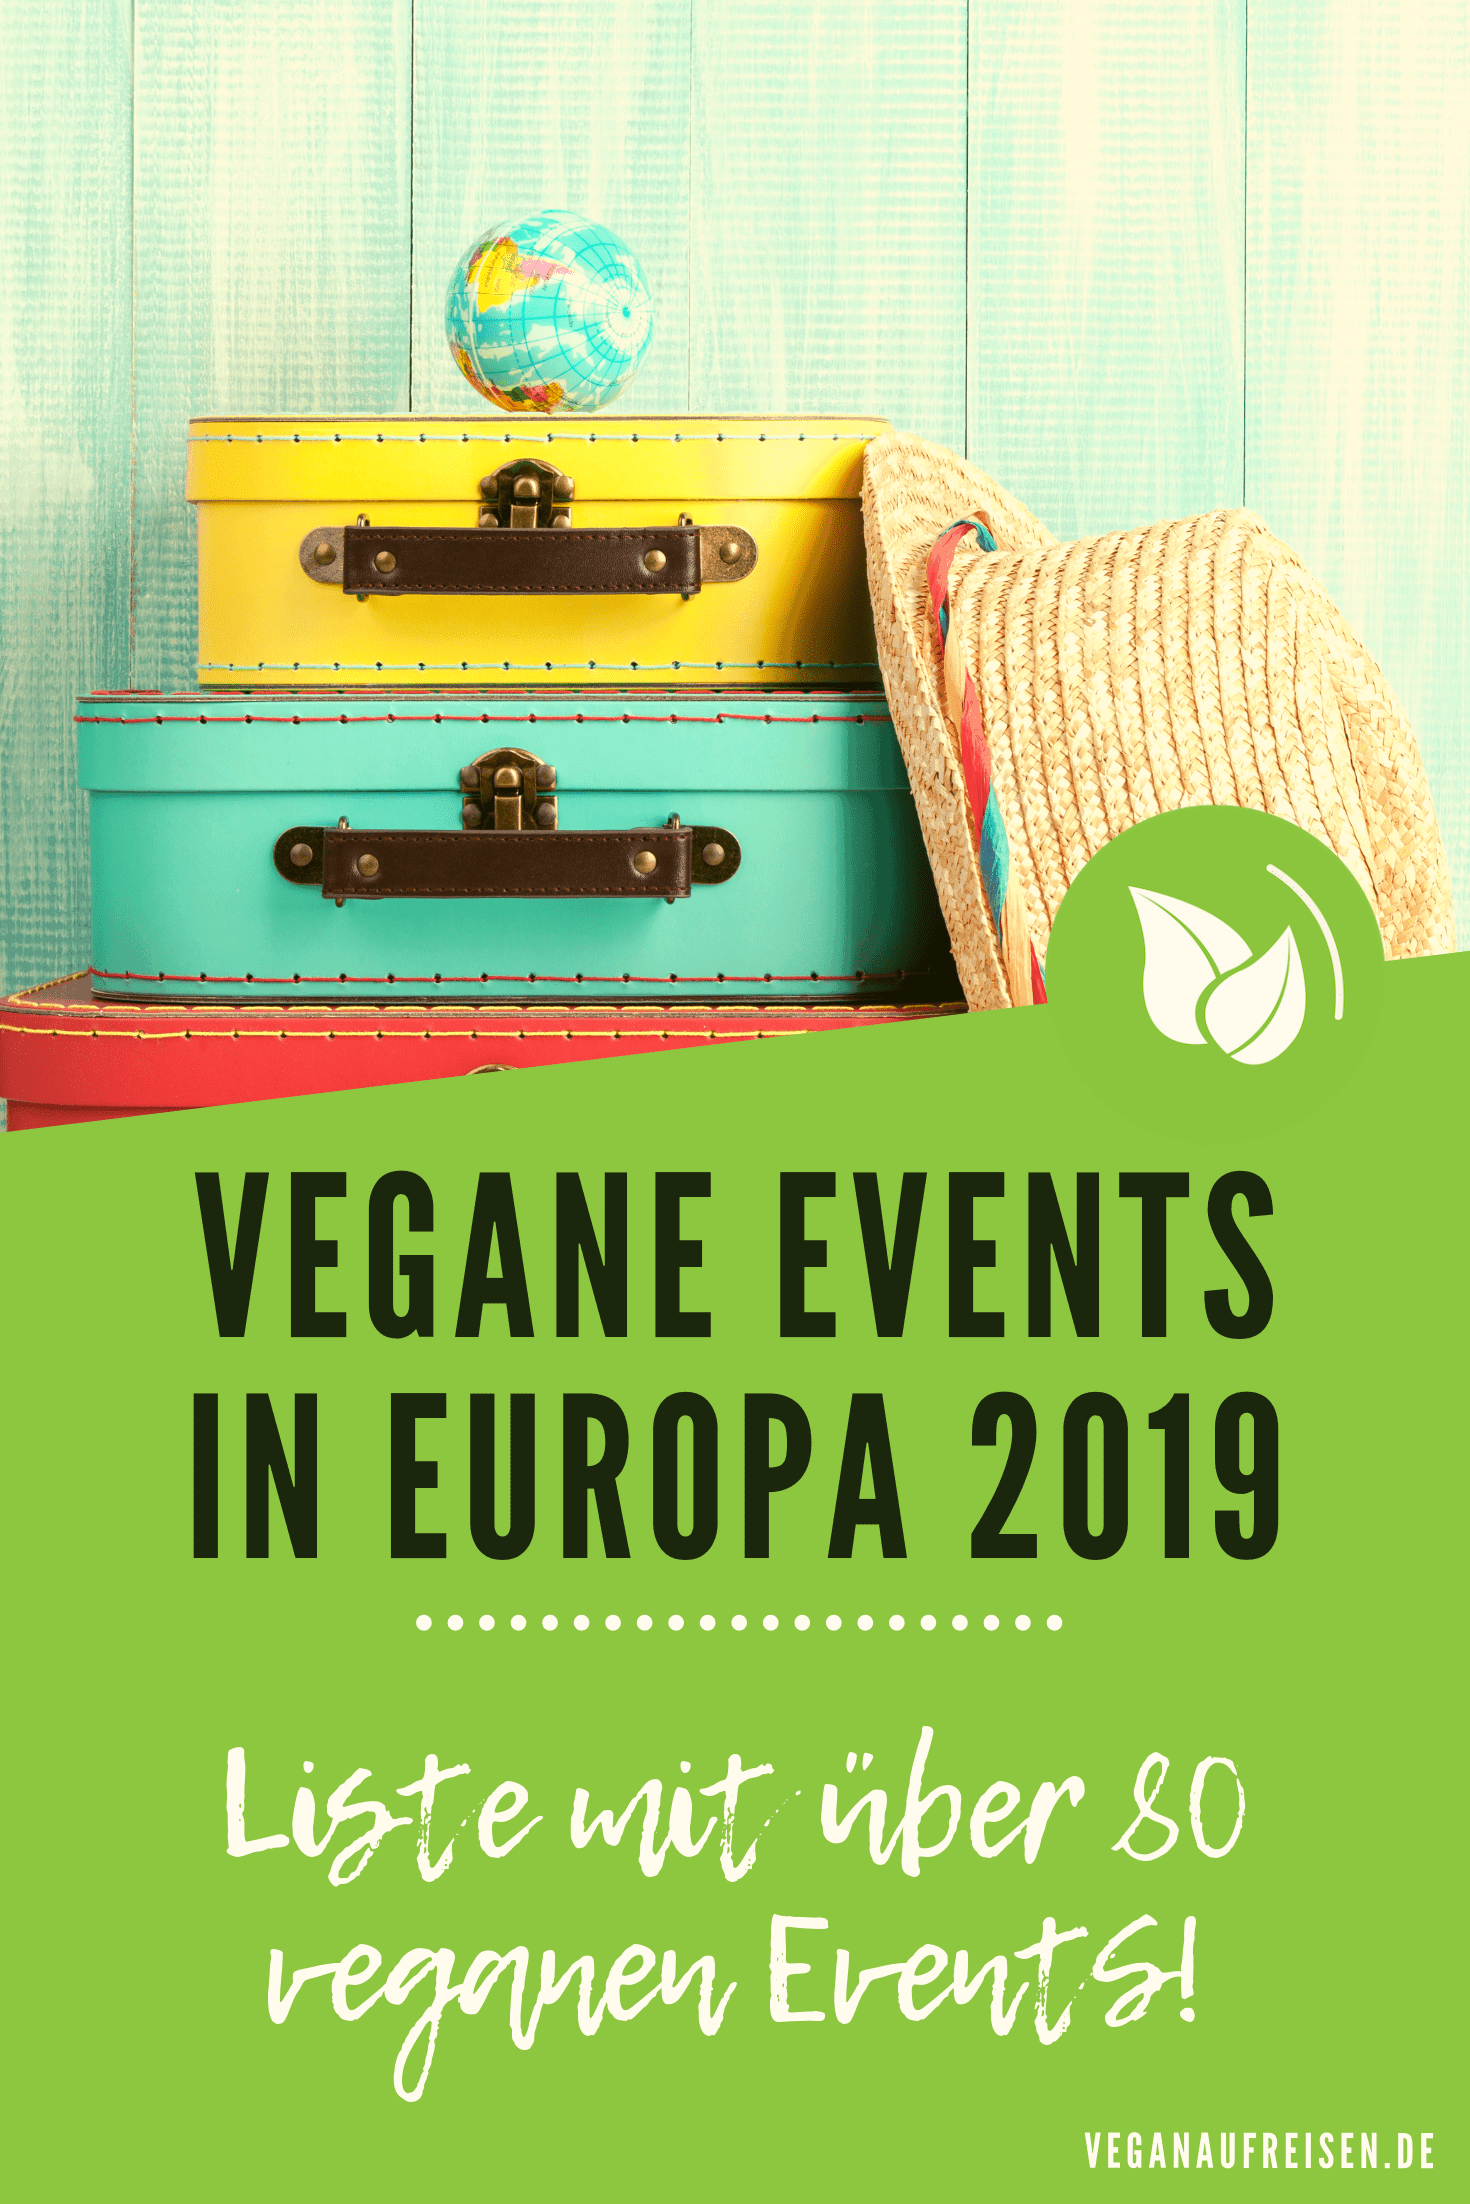 Vegane Events in Europa 2019